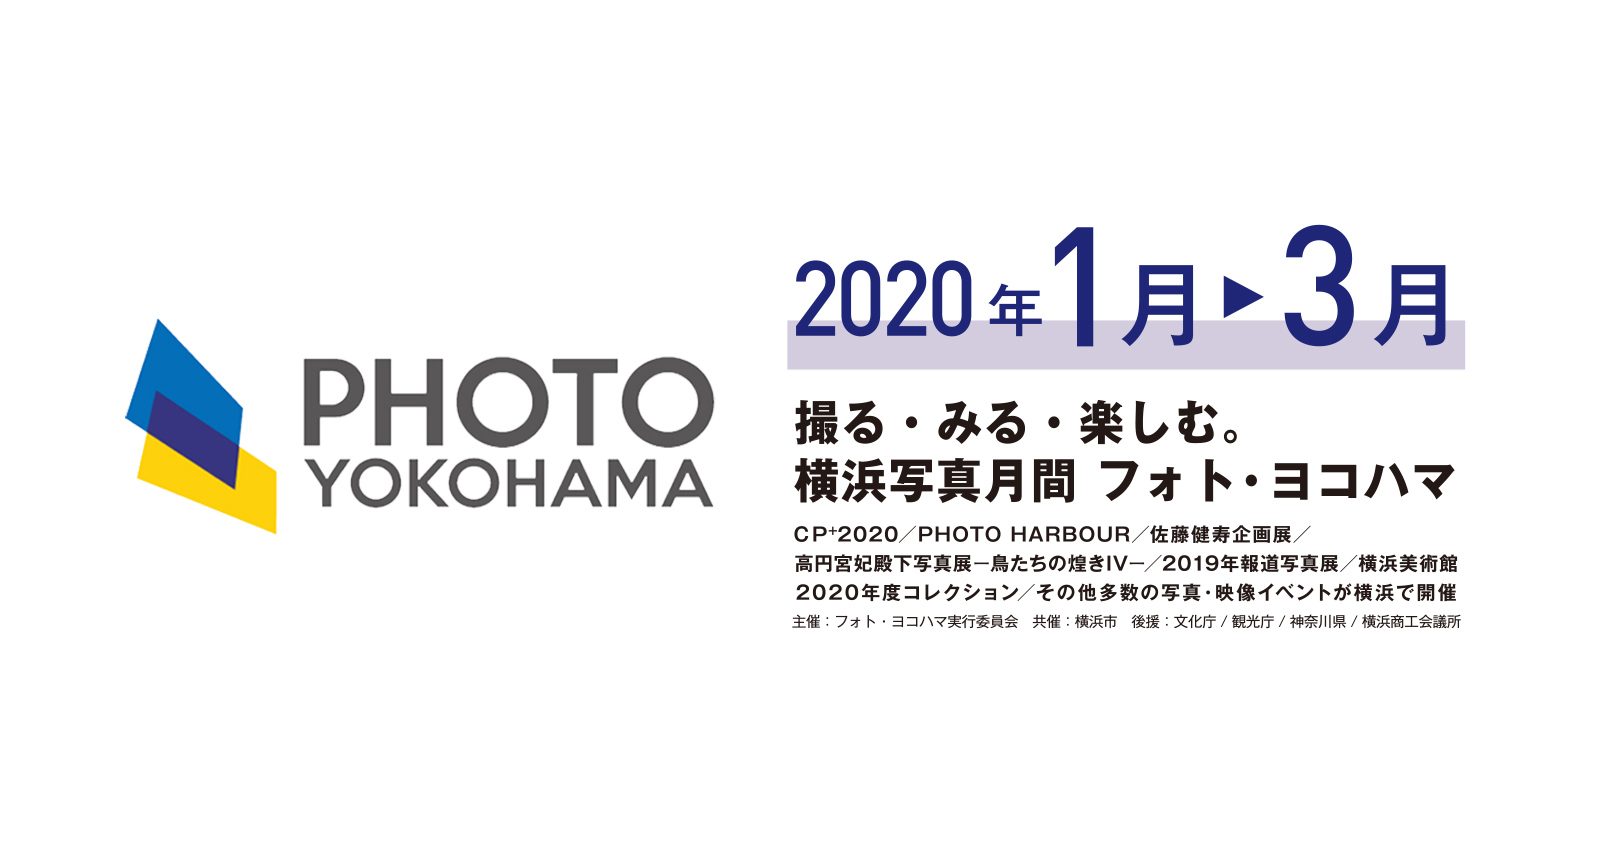 PHOTO YOKOHAMA 2019